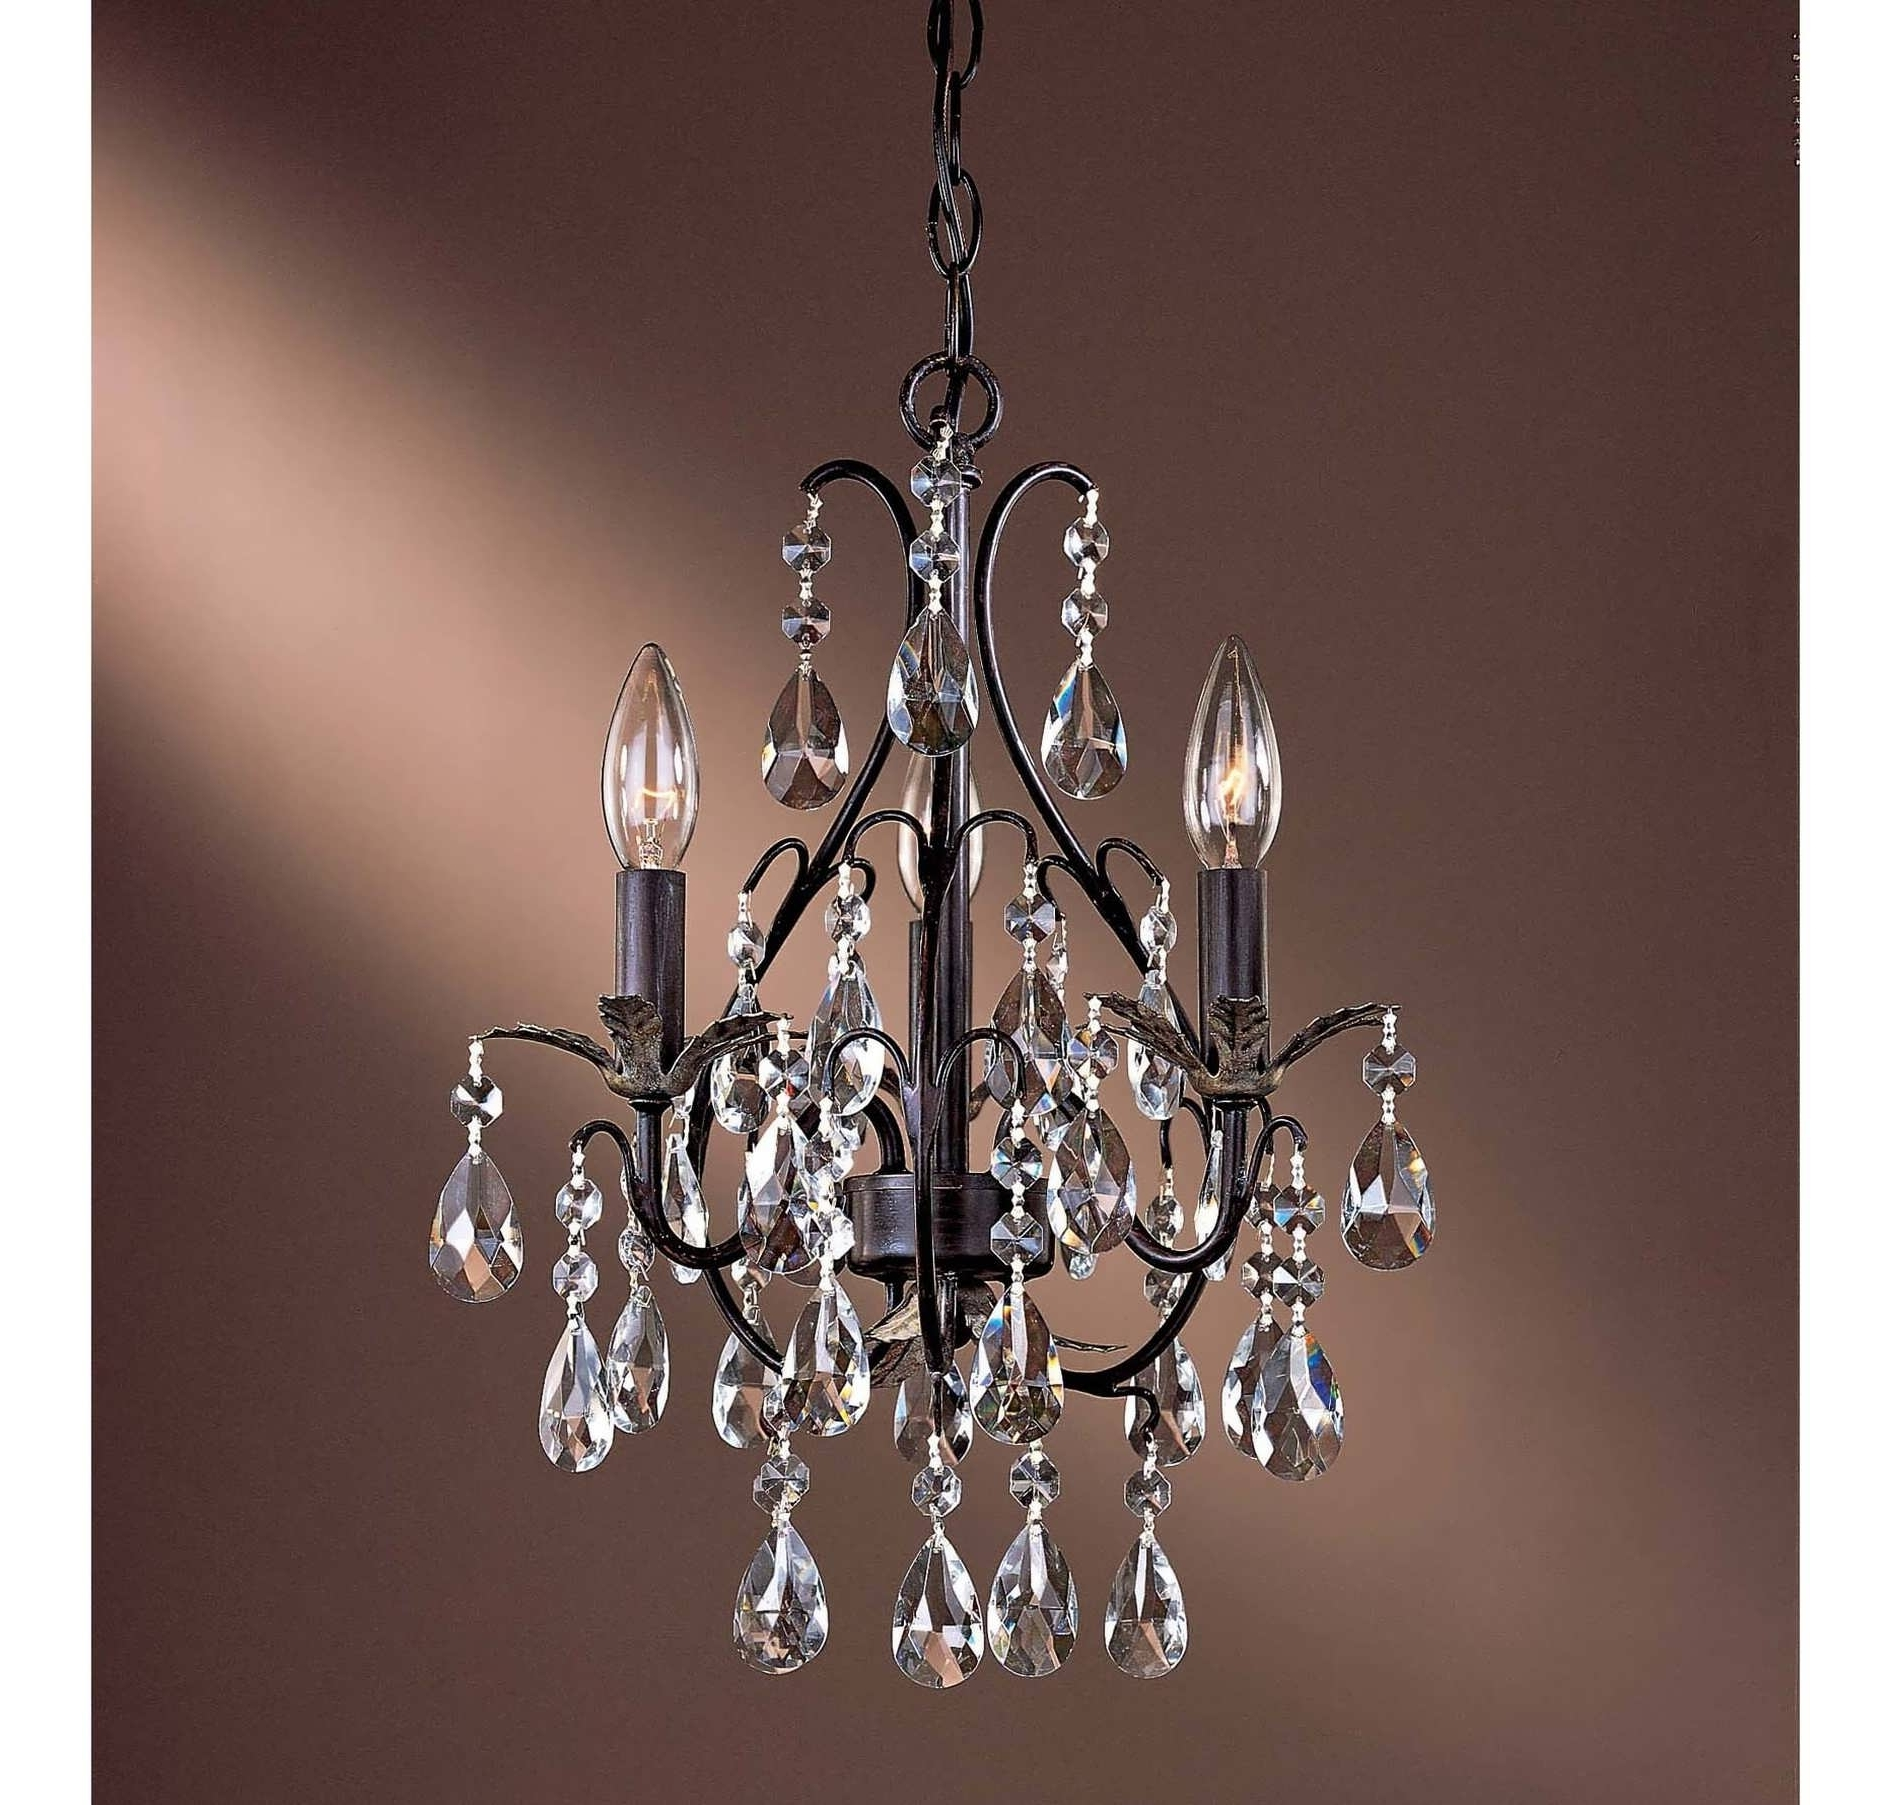 2018 Bathroom Chandeliers Sale Pertaining To Light : Rustic Chandeliers Crystal (View 5 of 20)